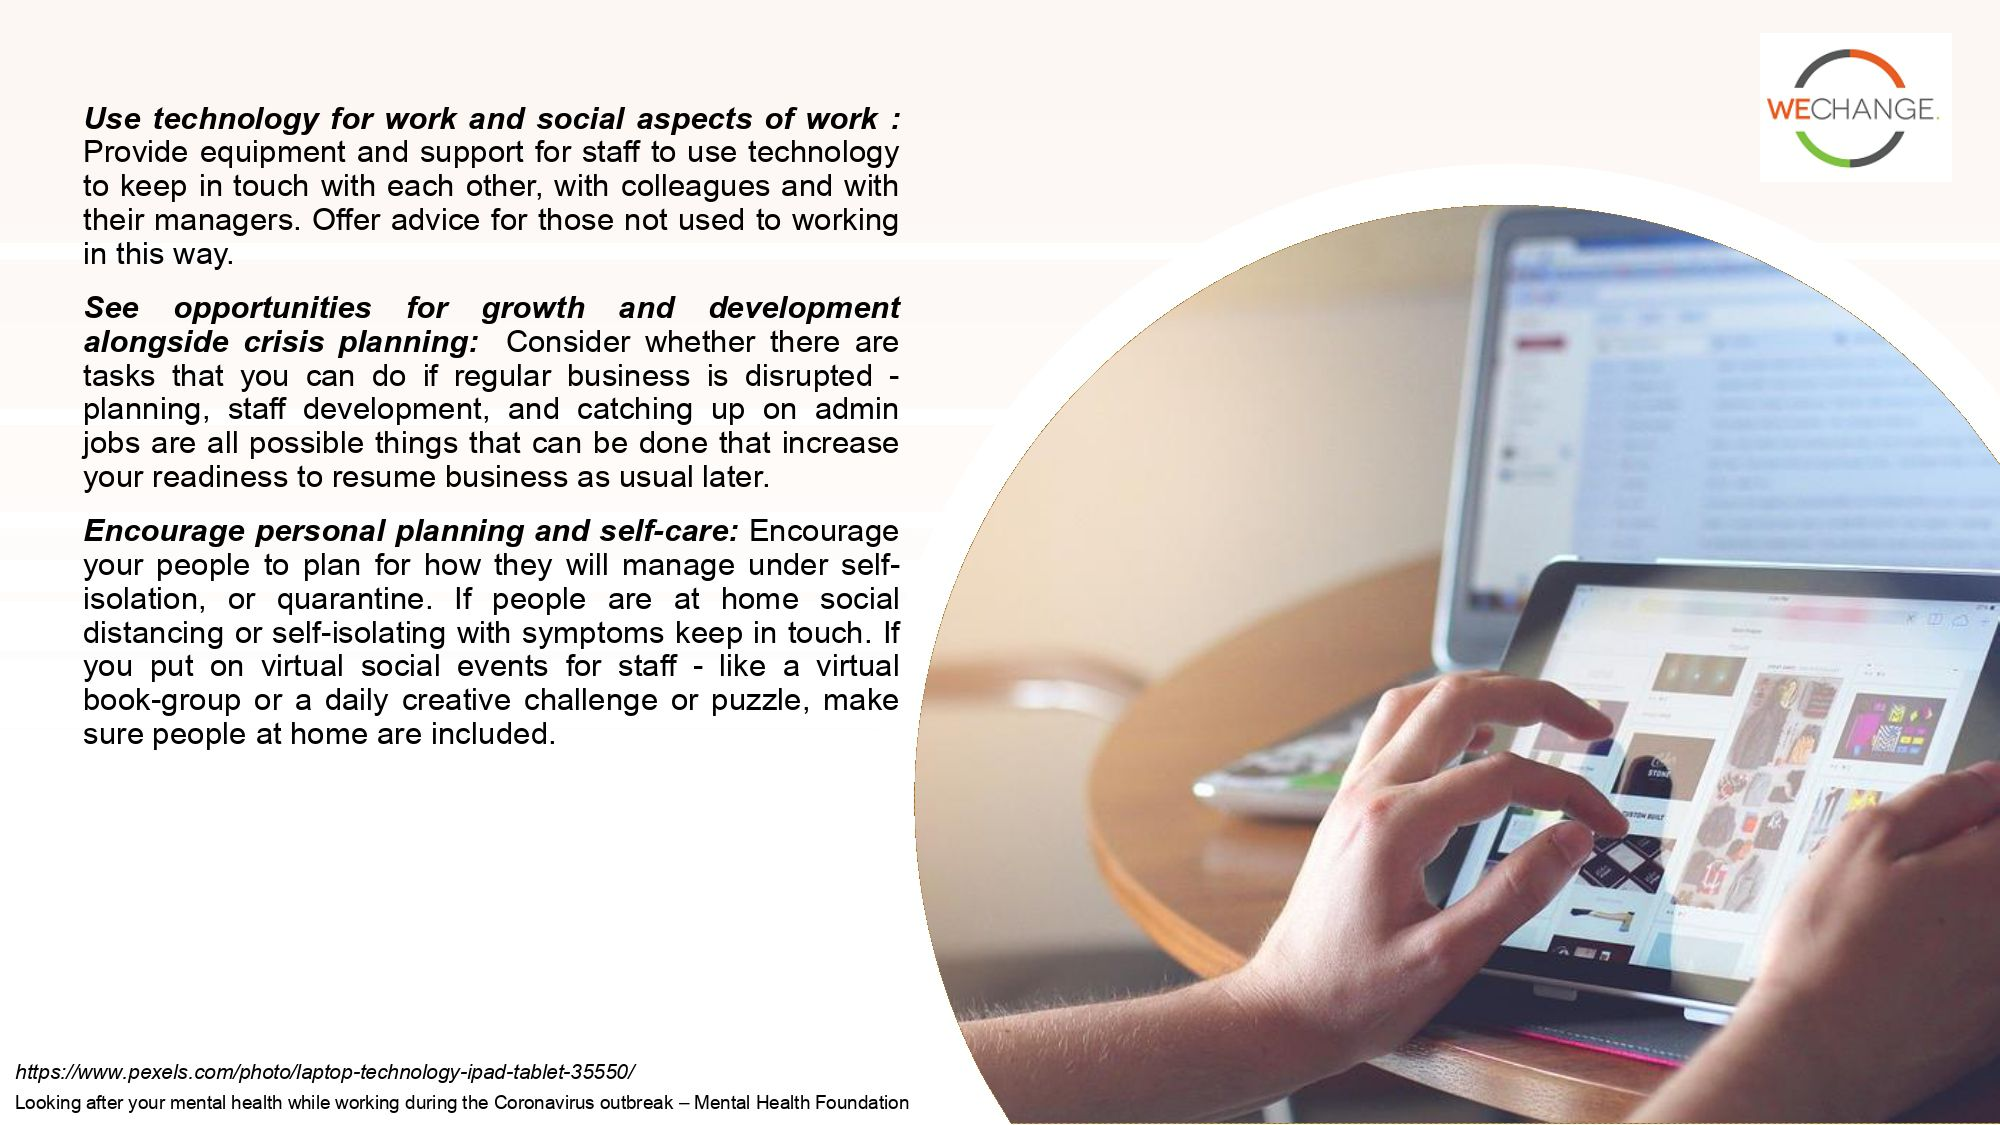 How to deal with employees stress of working from home in corona virus days page 0015 compressed How to deal with employees stress of working from home in corona virus days?